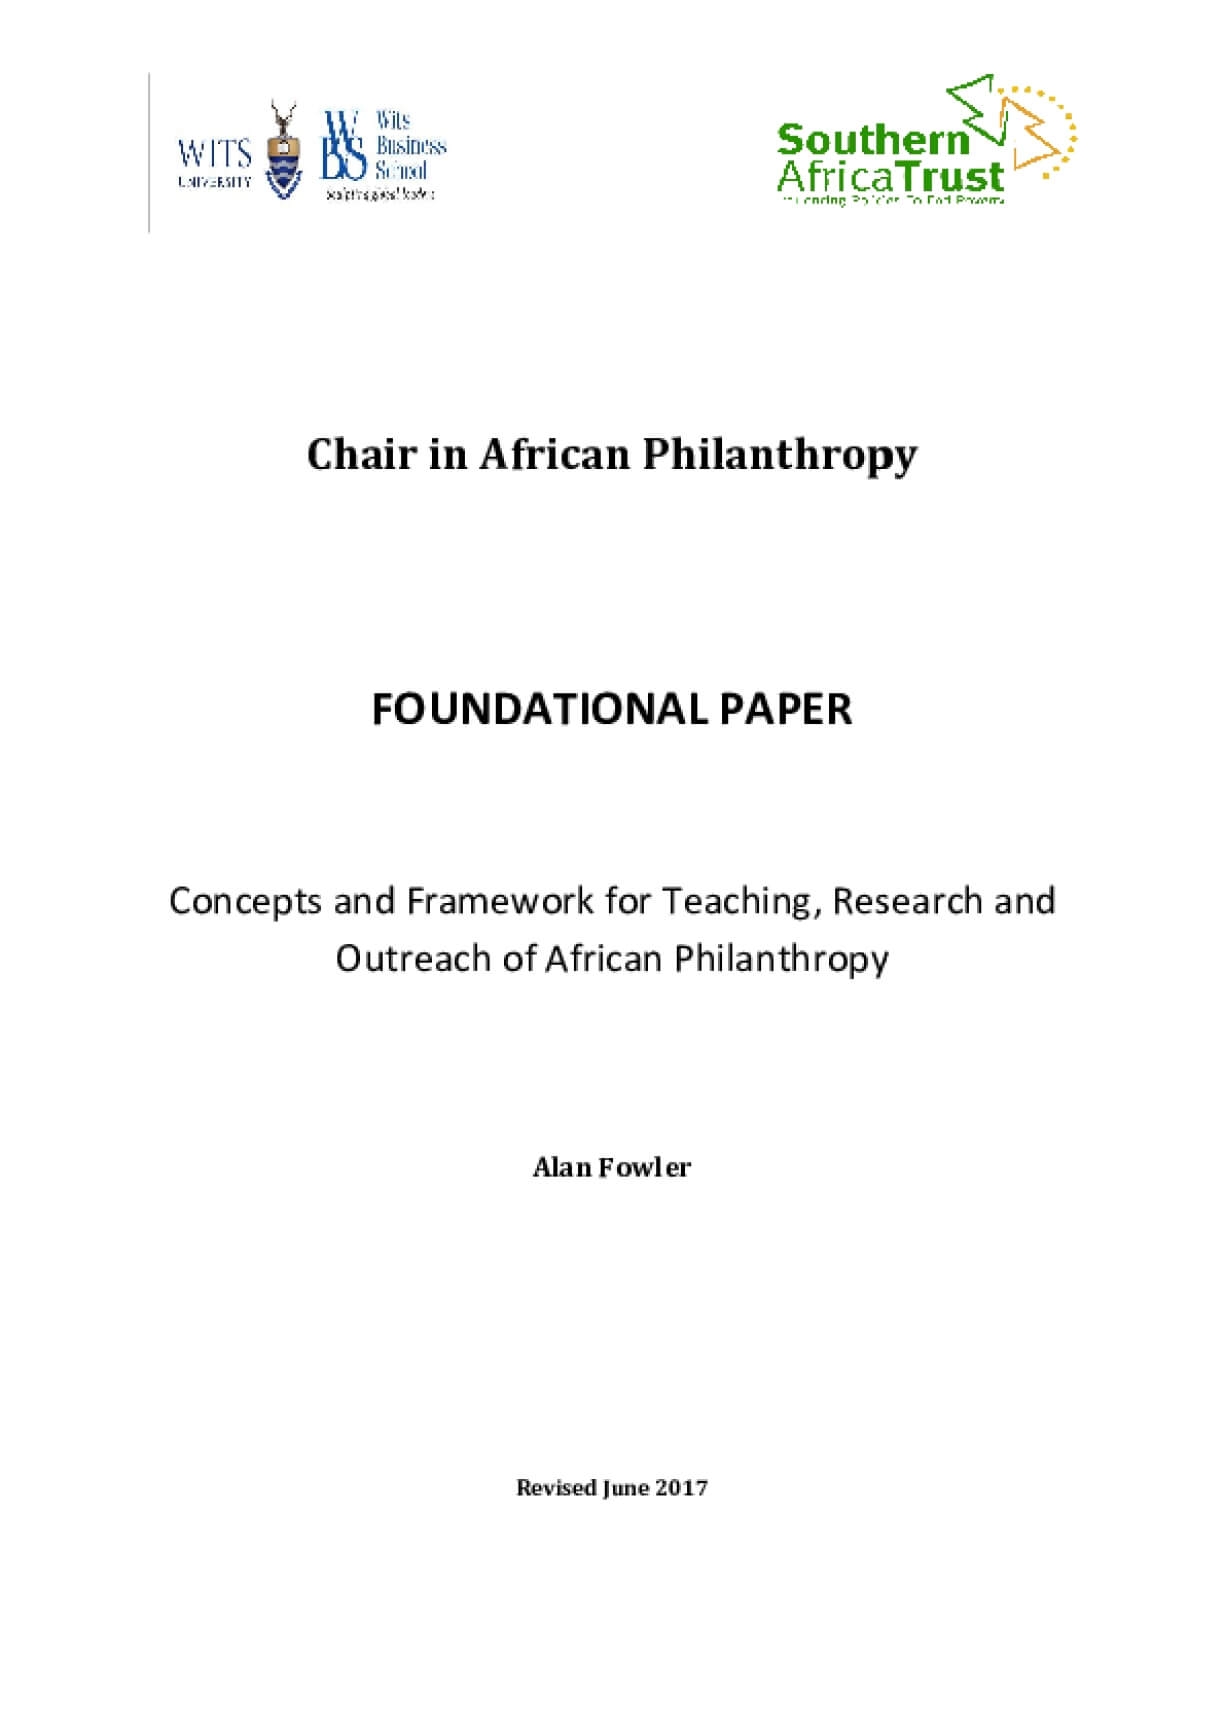 Concepts and Framework for Teaching, Research and Outreach of African Philanthropy